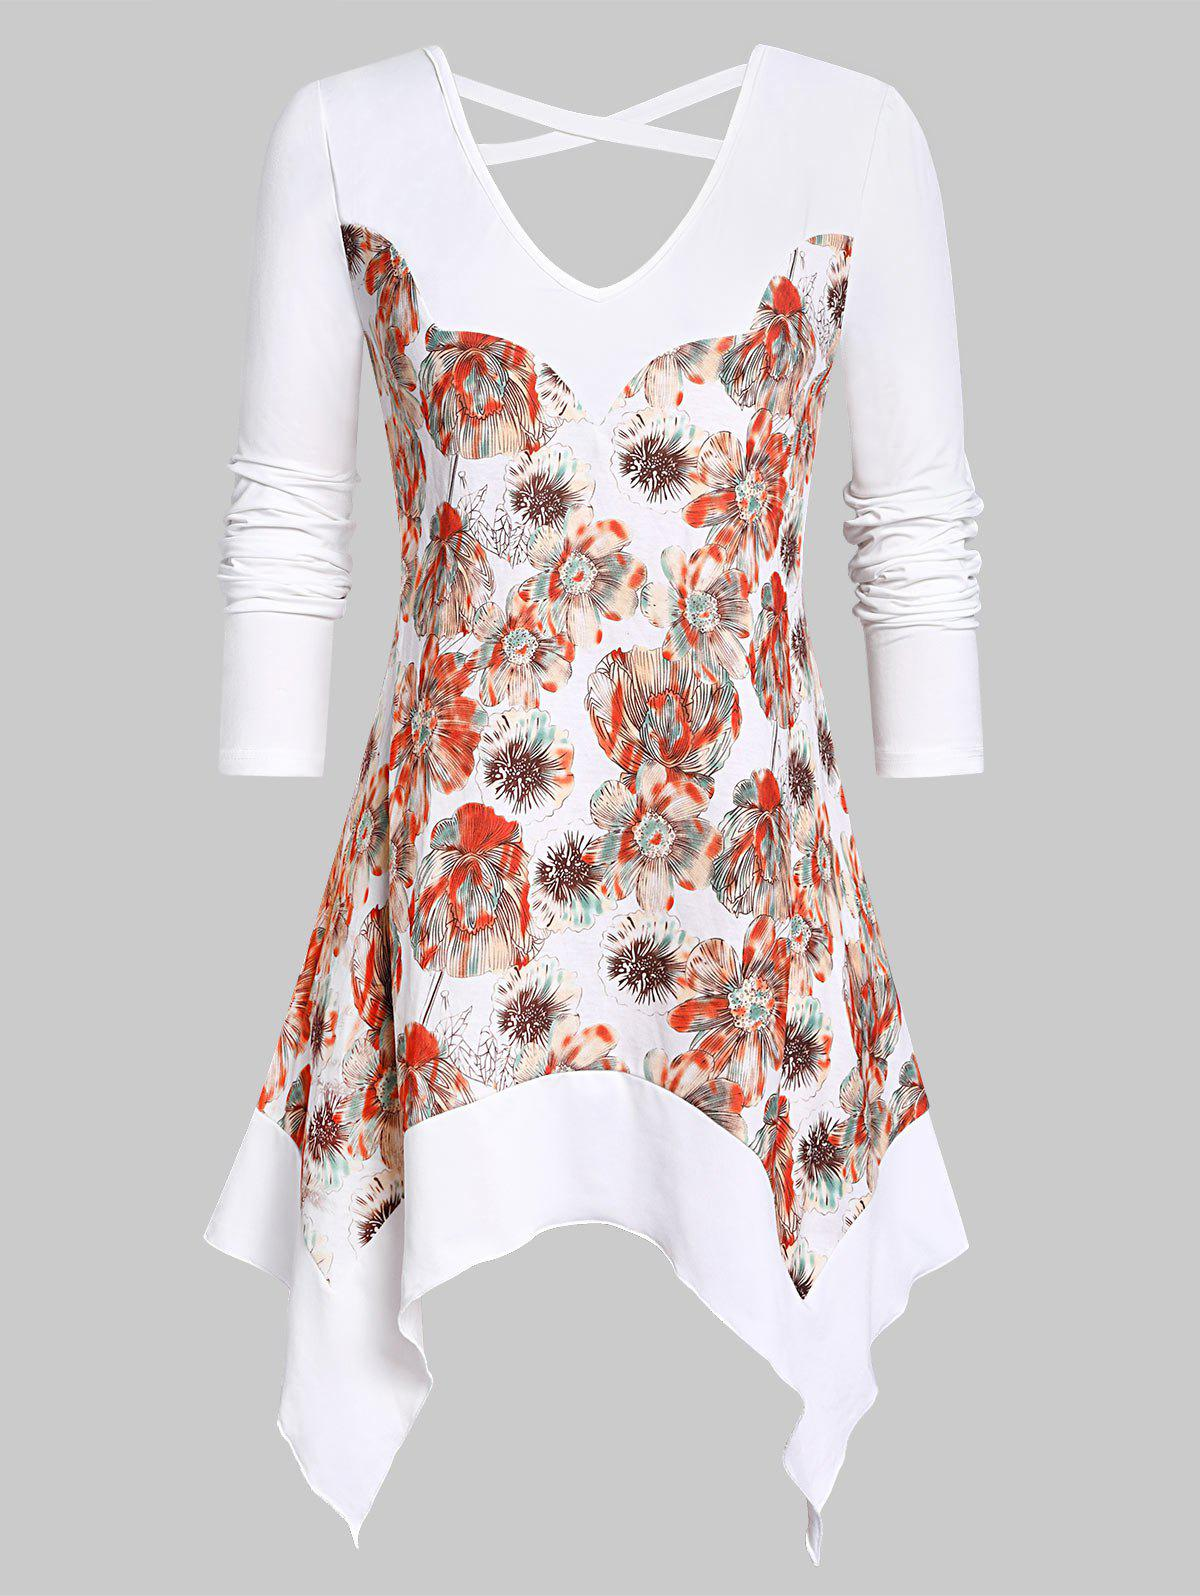 Chic Plus Size Handkerchief Criss Cross Floral T Shirt